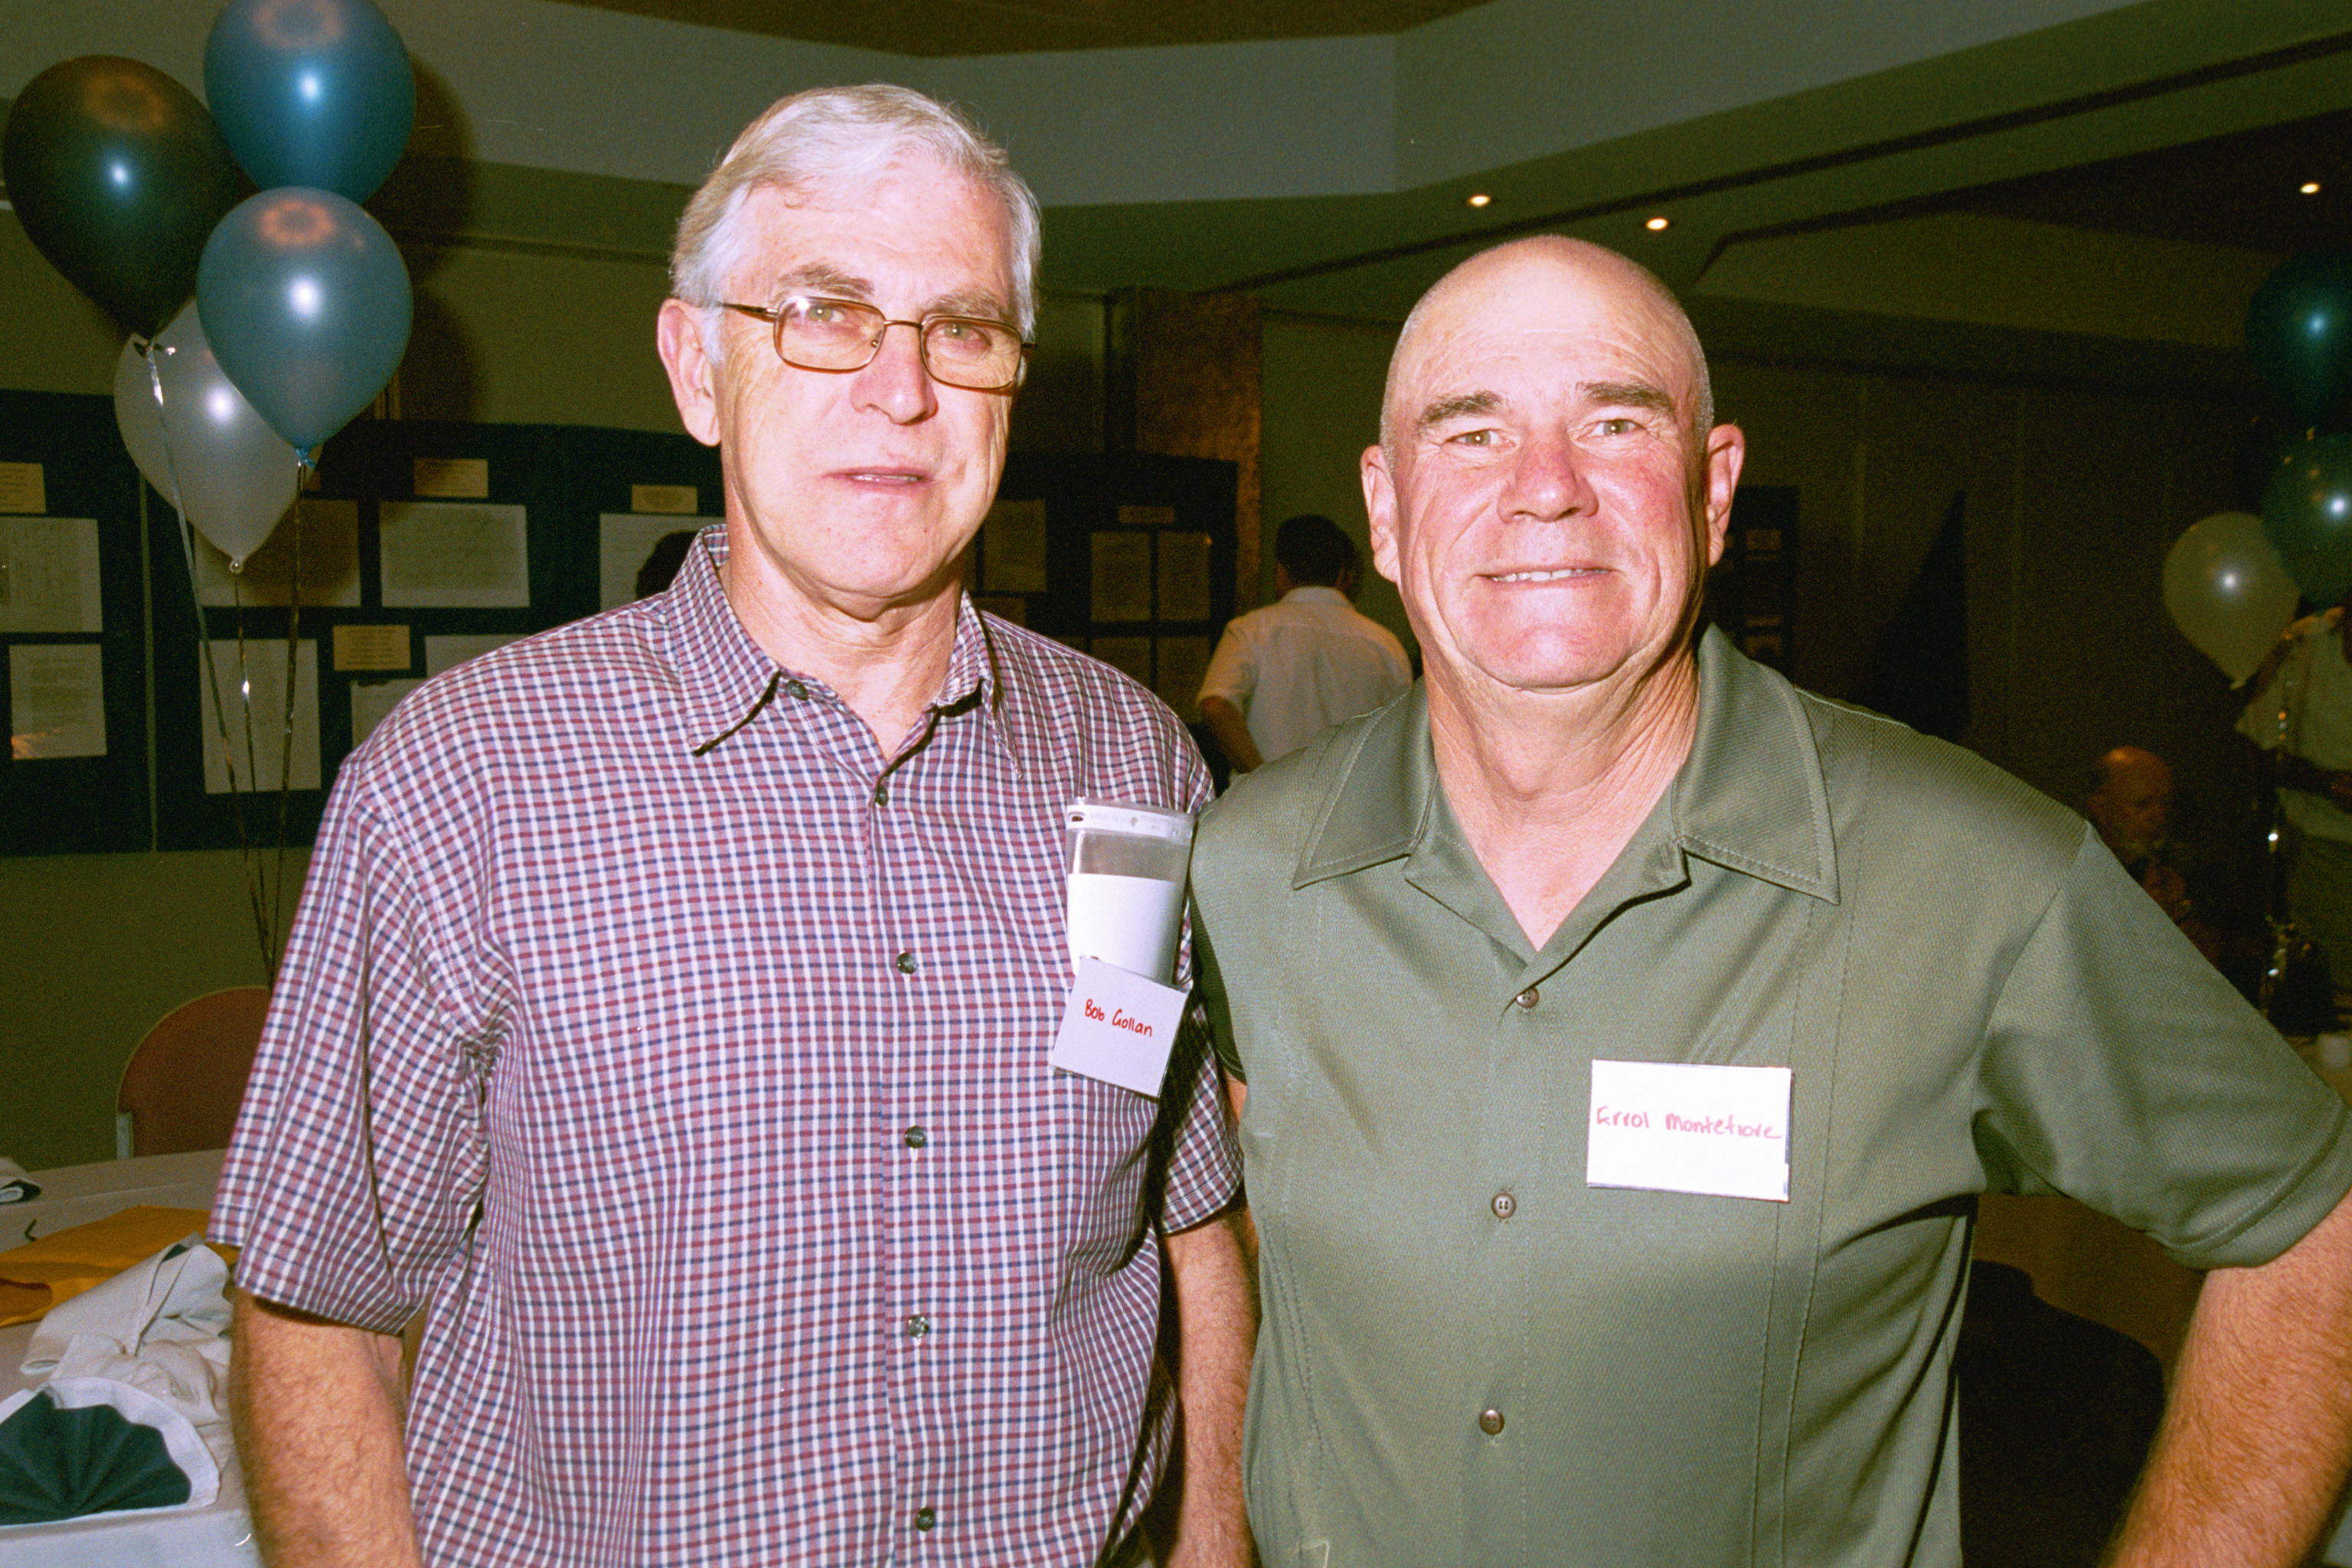 RETURN TO CABRAMATTA POLICE REUNION<br /> (L-R) BOB GOLLAN, ERROL MONTEFIORE<br /> 6 NOVEMBER 2004<br /> BOB GOLLAN DIED IN MARCH 2007 AGED 61.